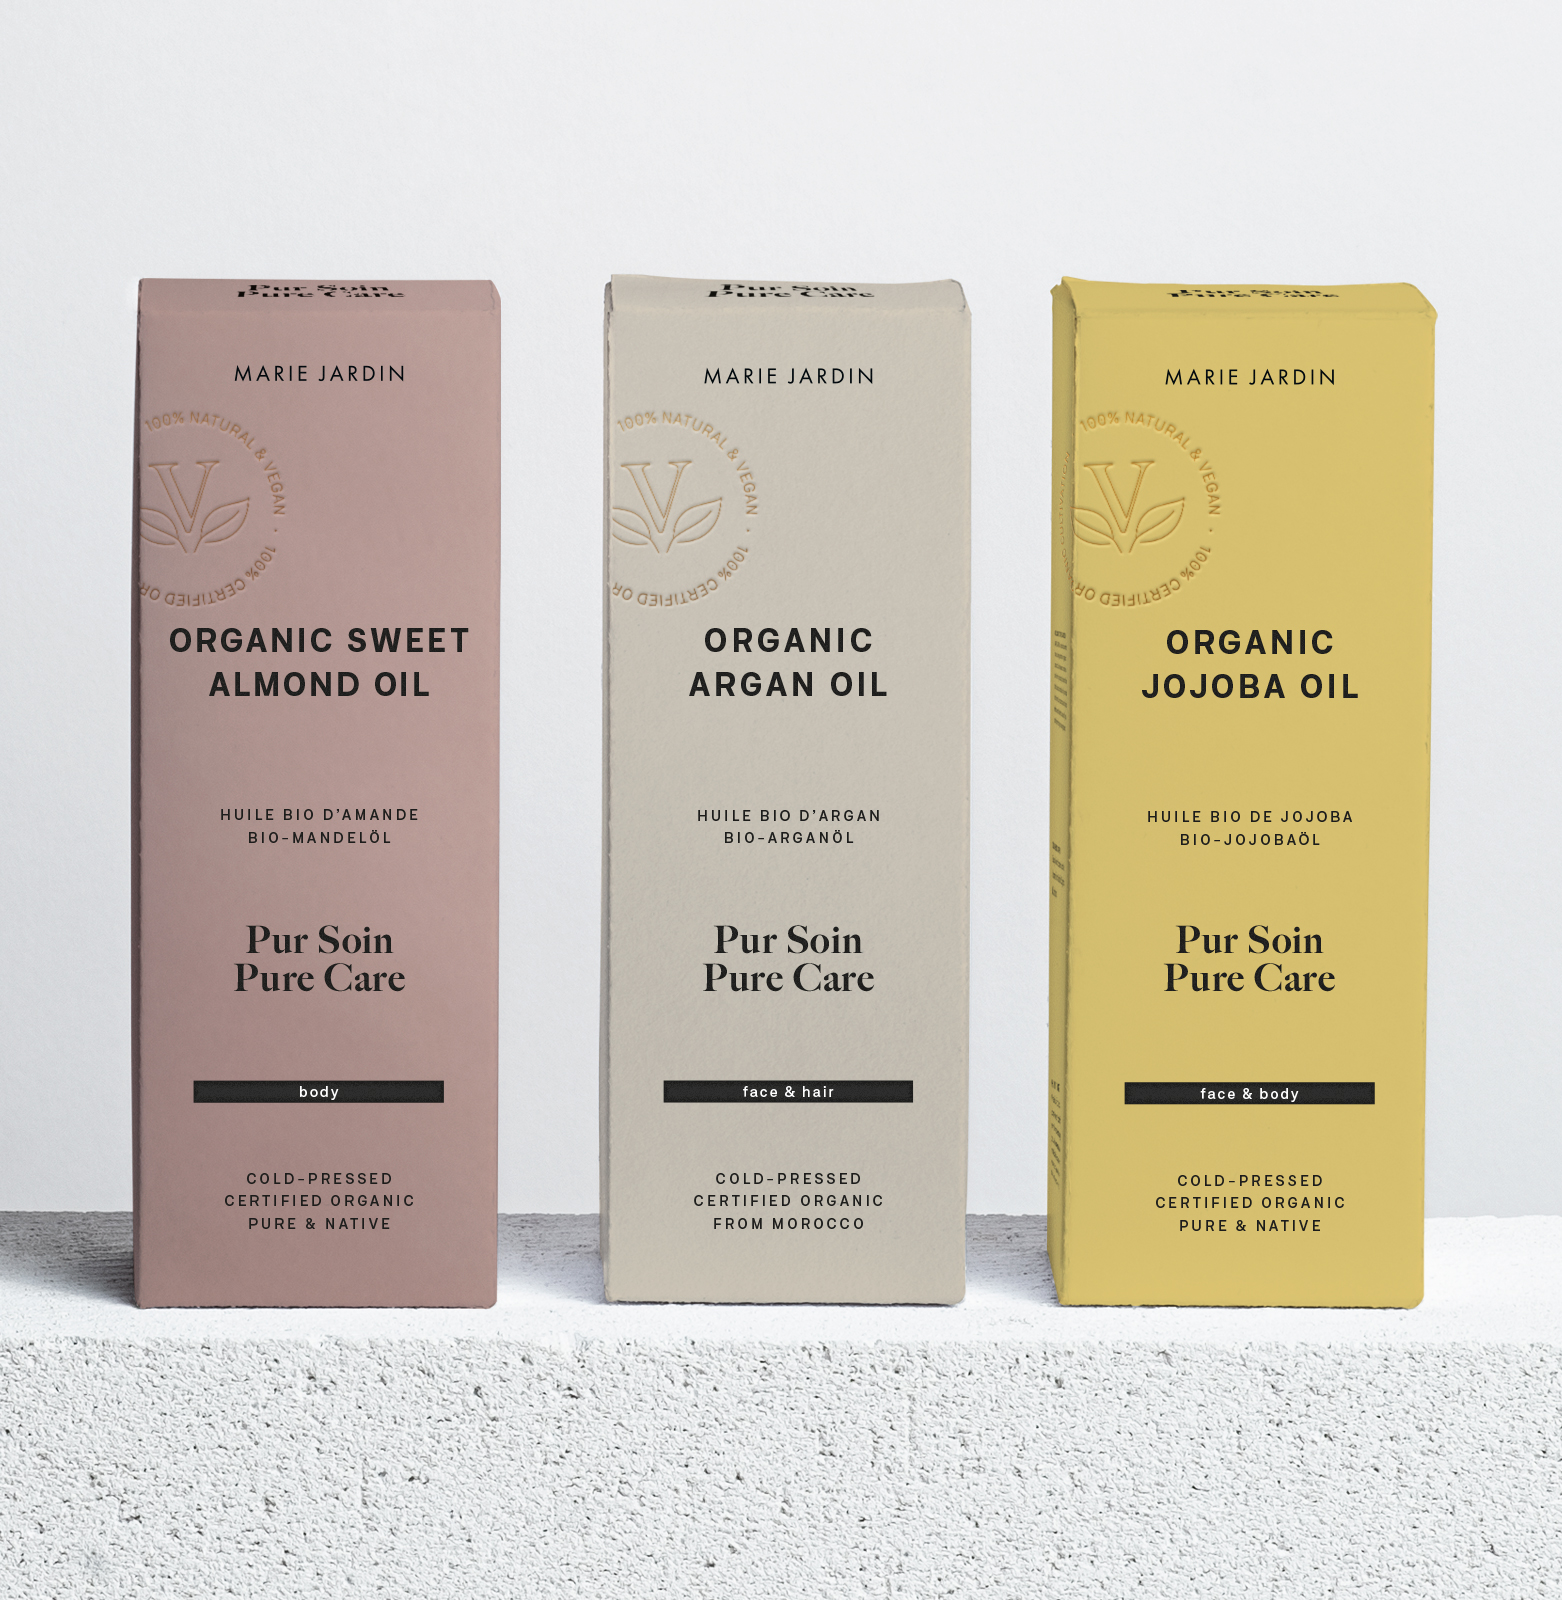 packaging_Marie-Jardin_Markus-Resch_2x